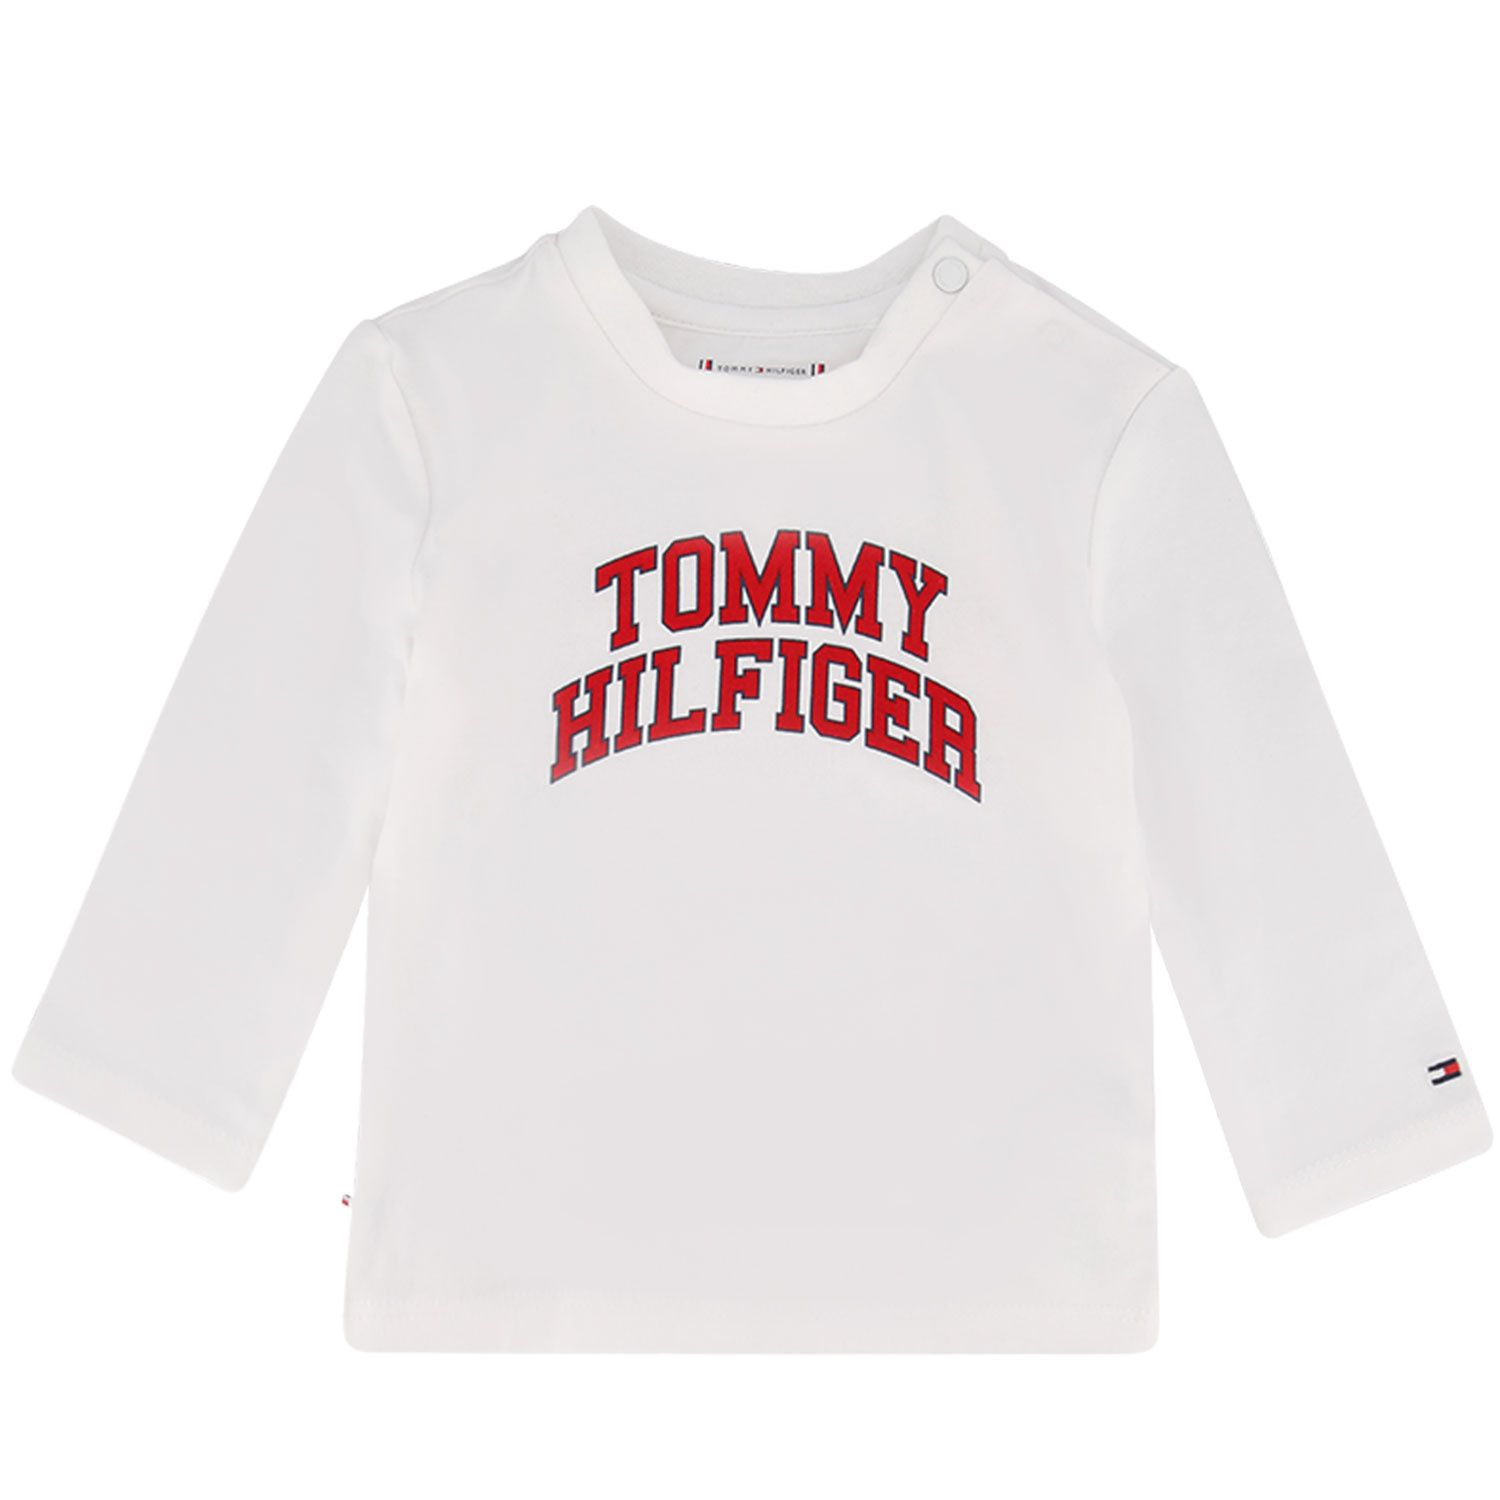 Afbeelding van Tommy Hilfiger KN0KN01156 baby t-shirt wit